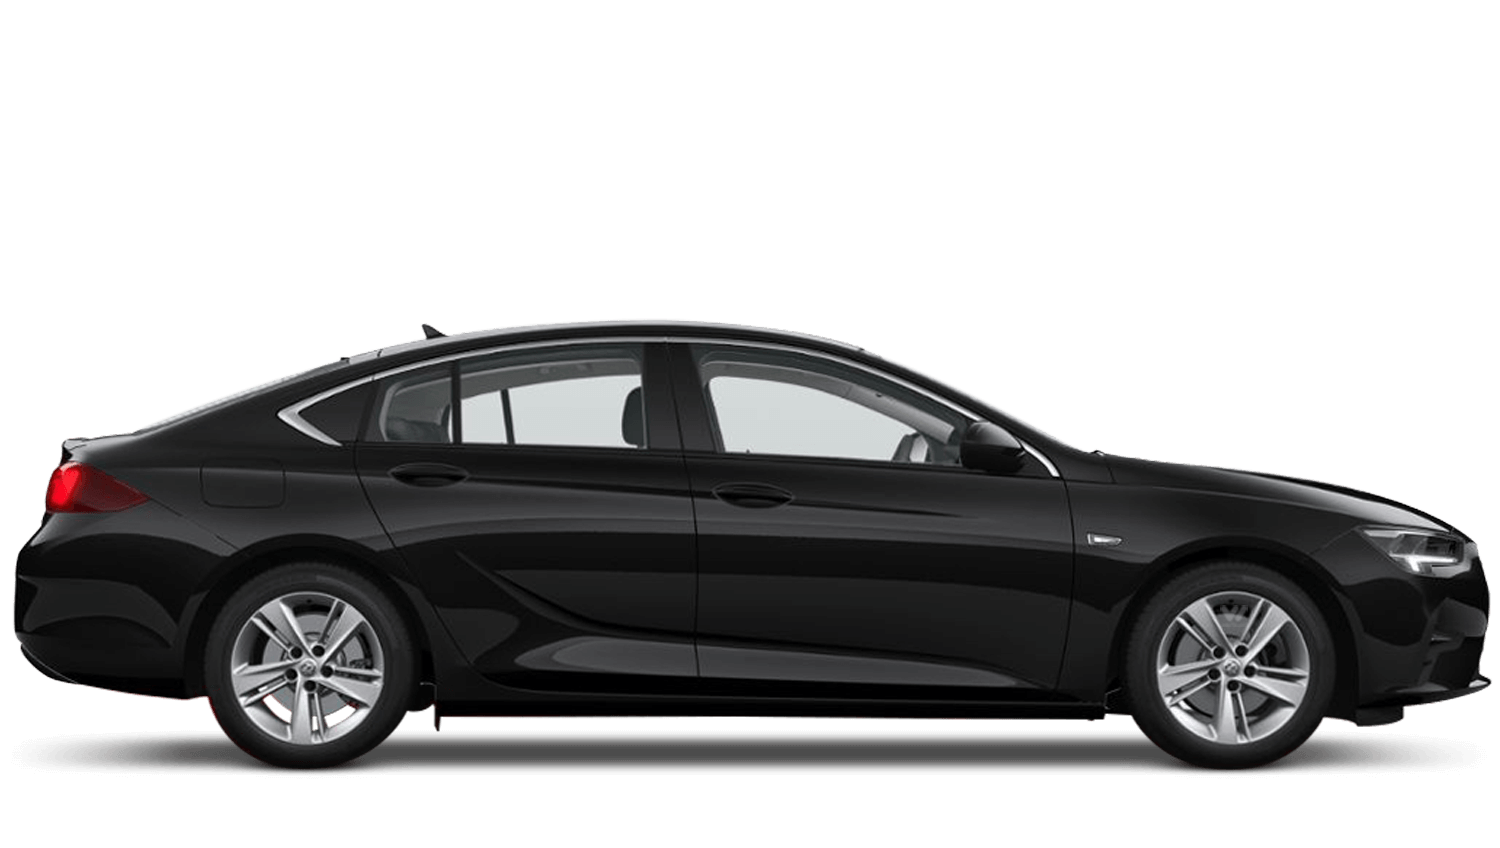 Mineral Black (Metallic) Vauxhall Insignia New